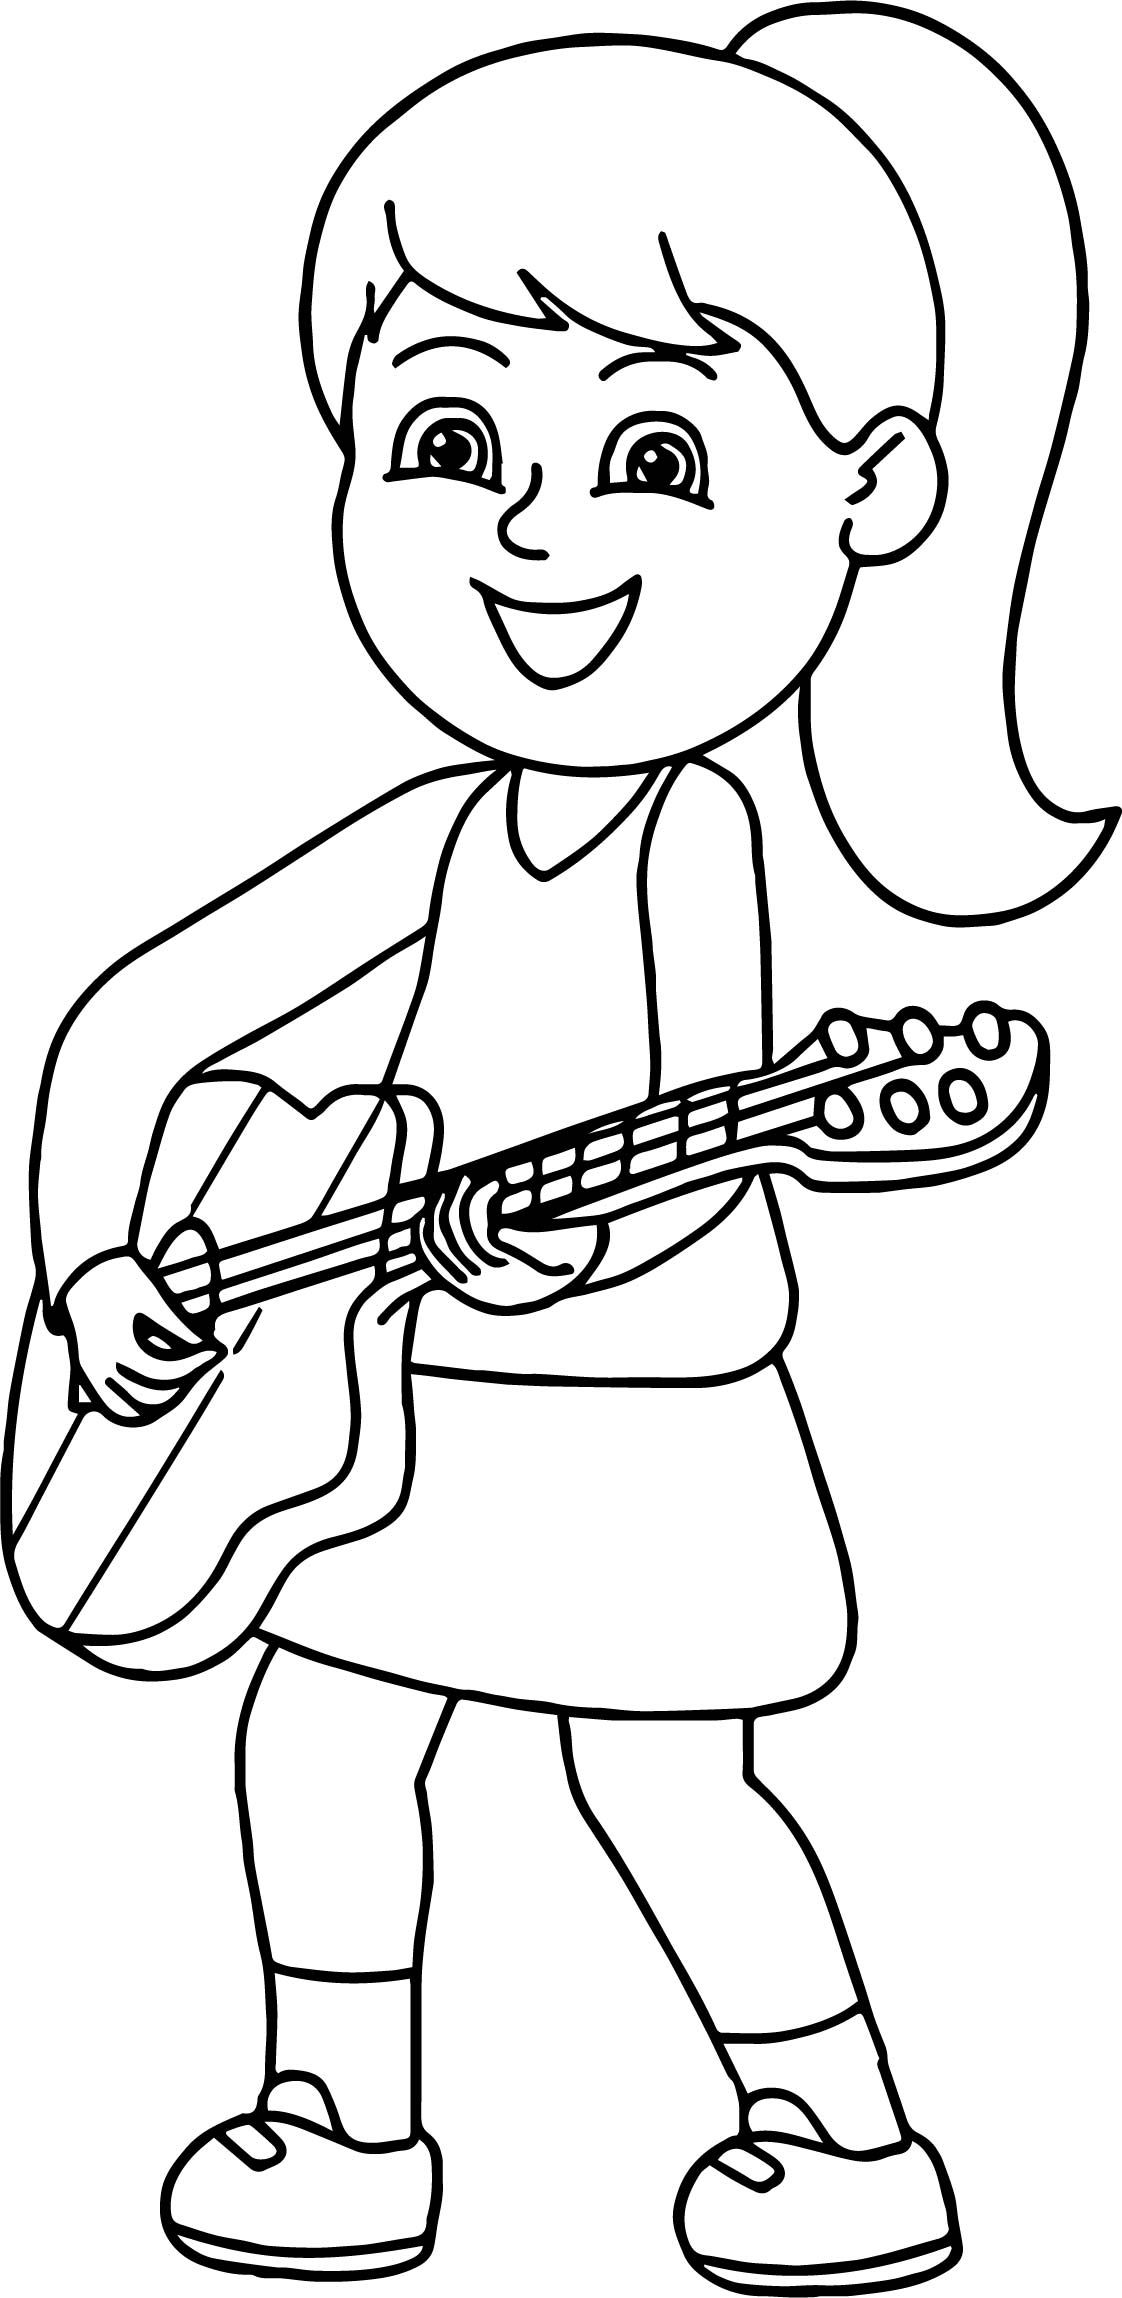 Cool Girl Playing Guitar Playing The Guitar Coloring Page Music Coloring Coloring Pages Playing Guitar